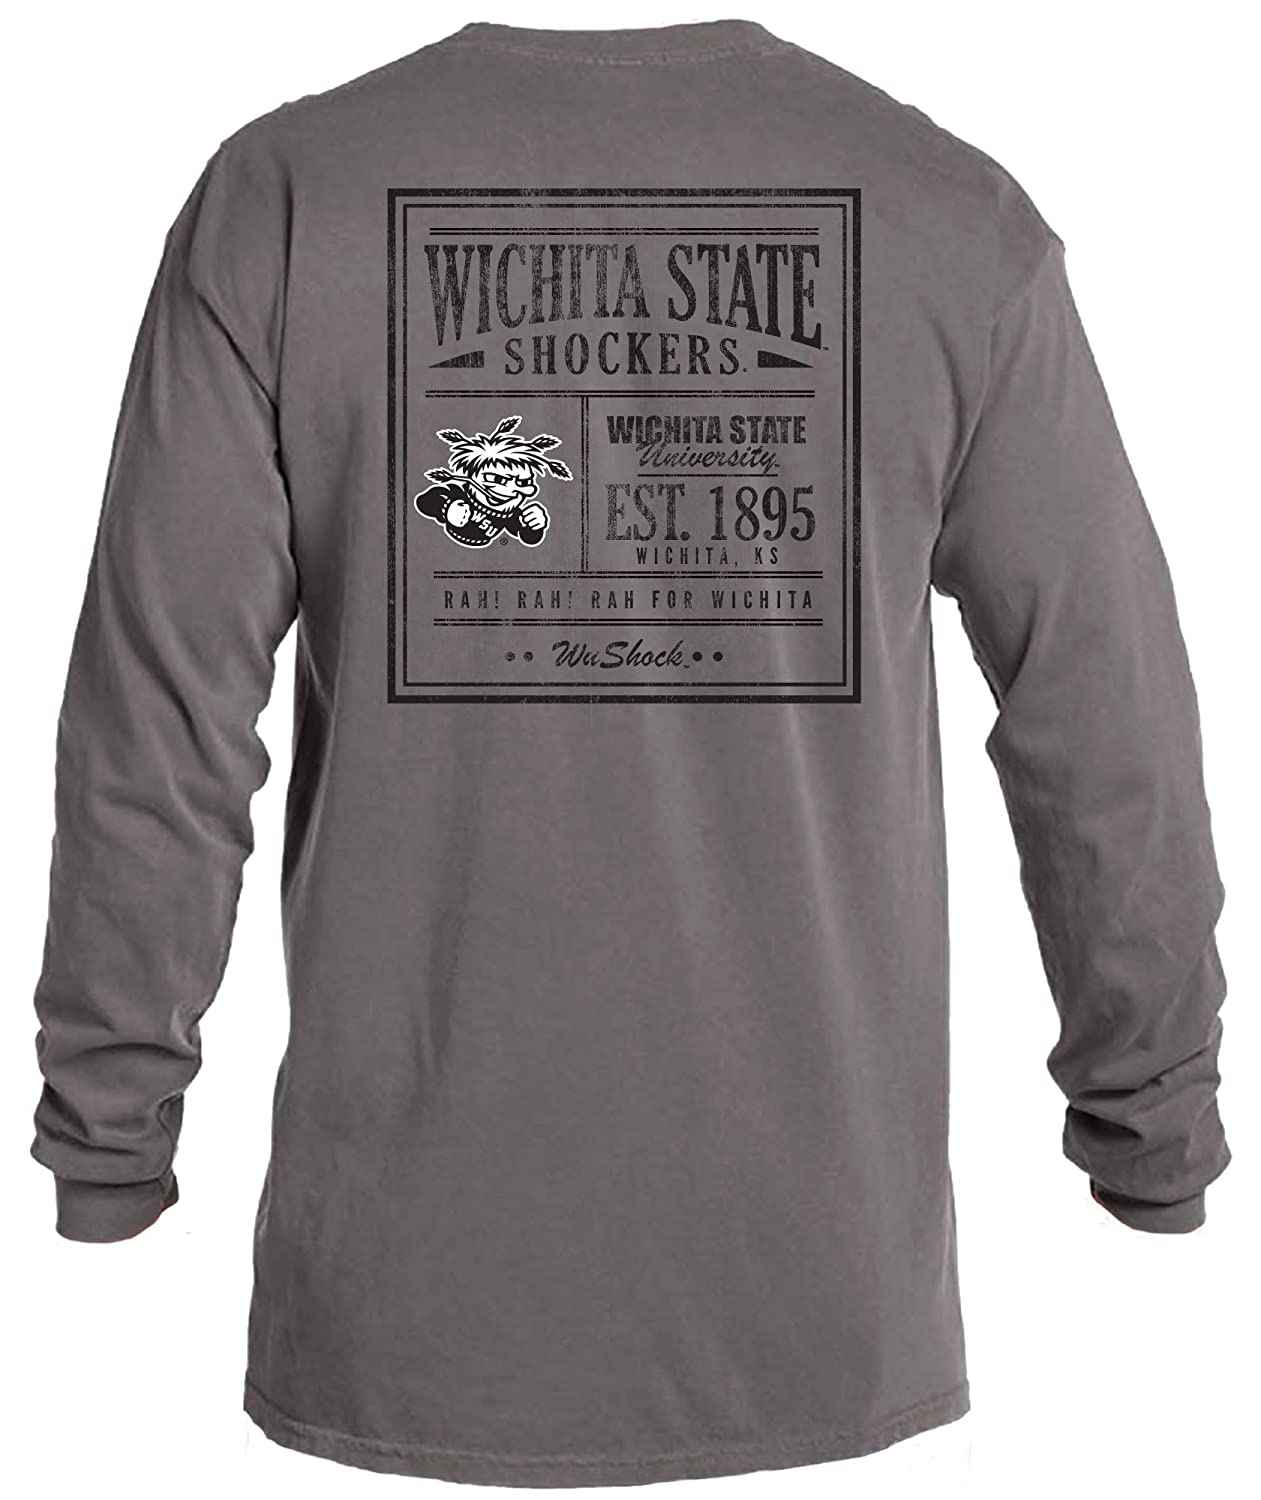 f9927e58 Amazon.com : Image One NCAA Vintage Poster Comfort Color Long Sleeve T-Shirt  : Sports & Outdoors